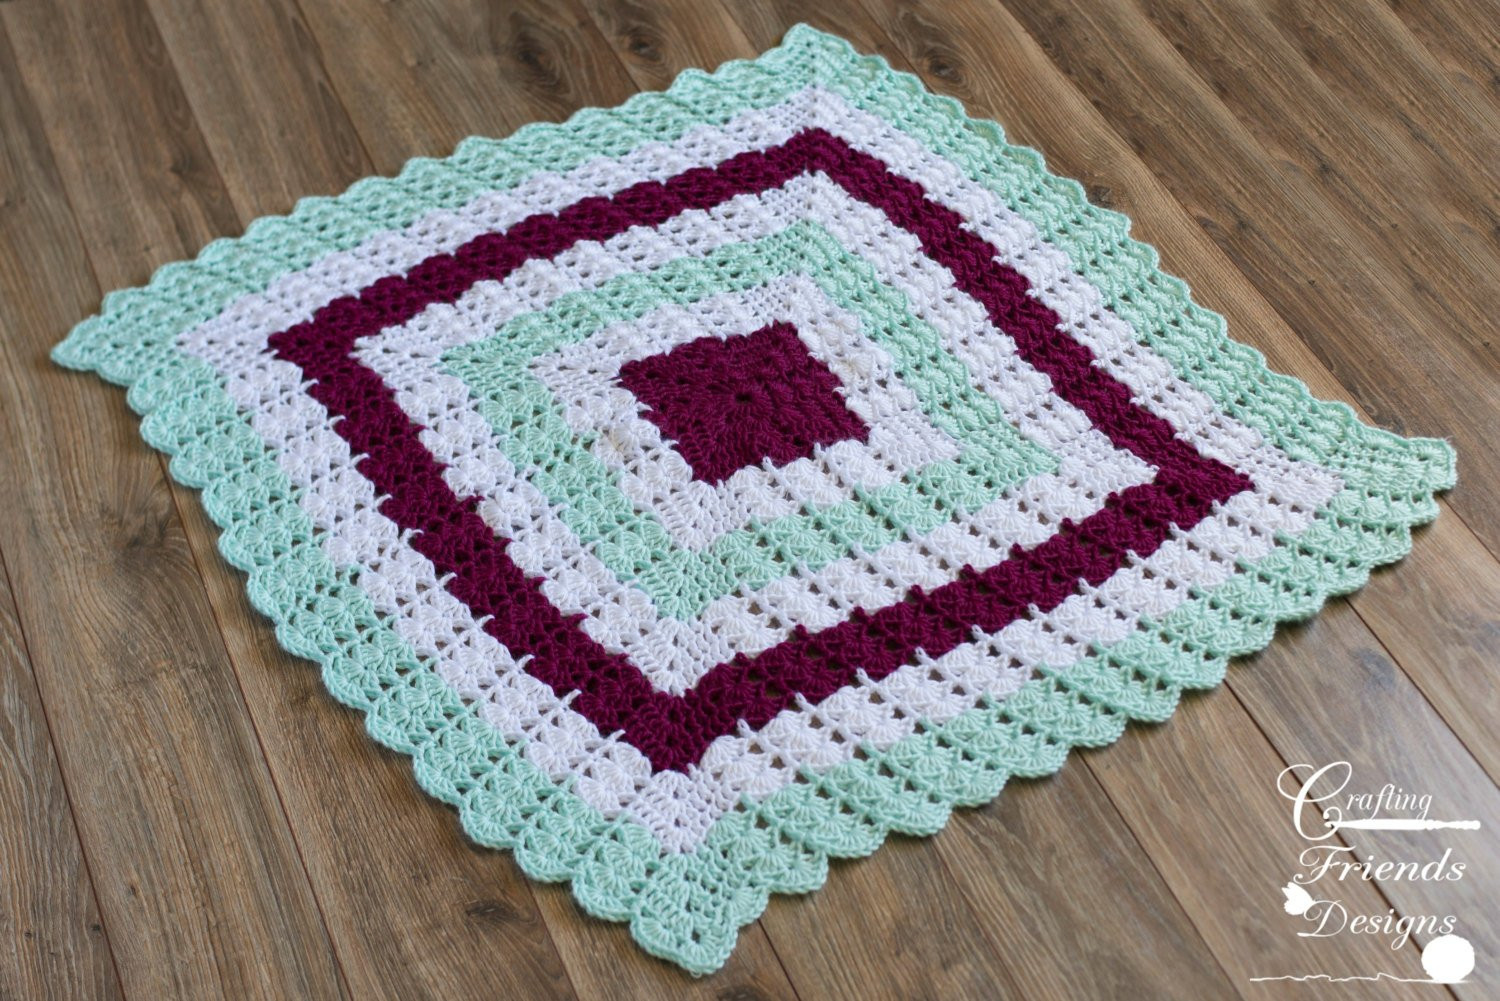 Afghan Square Crochet Patterns Luxury Crochet Pattern Shell Brook Square Afghan for Infants Of Amazing 50 Pics Afghan Square Crochet Patterns